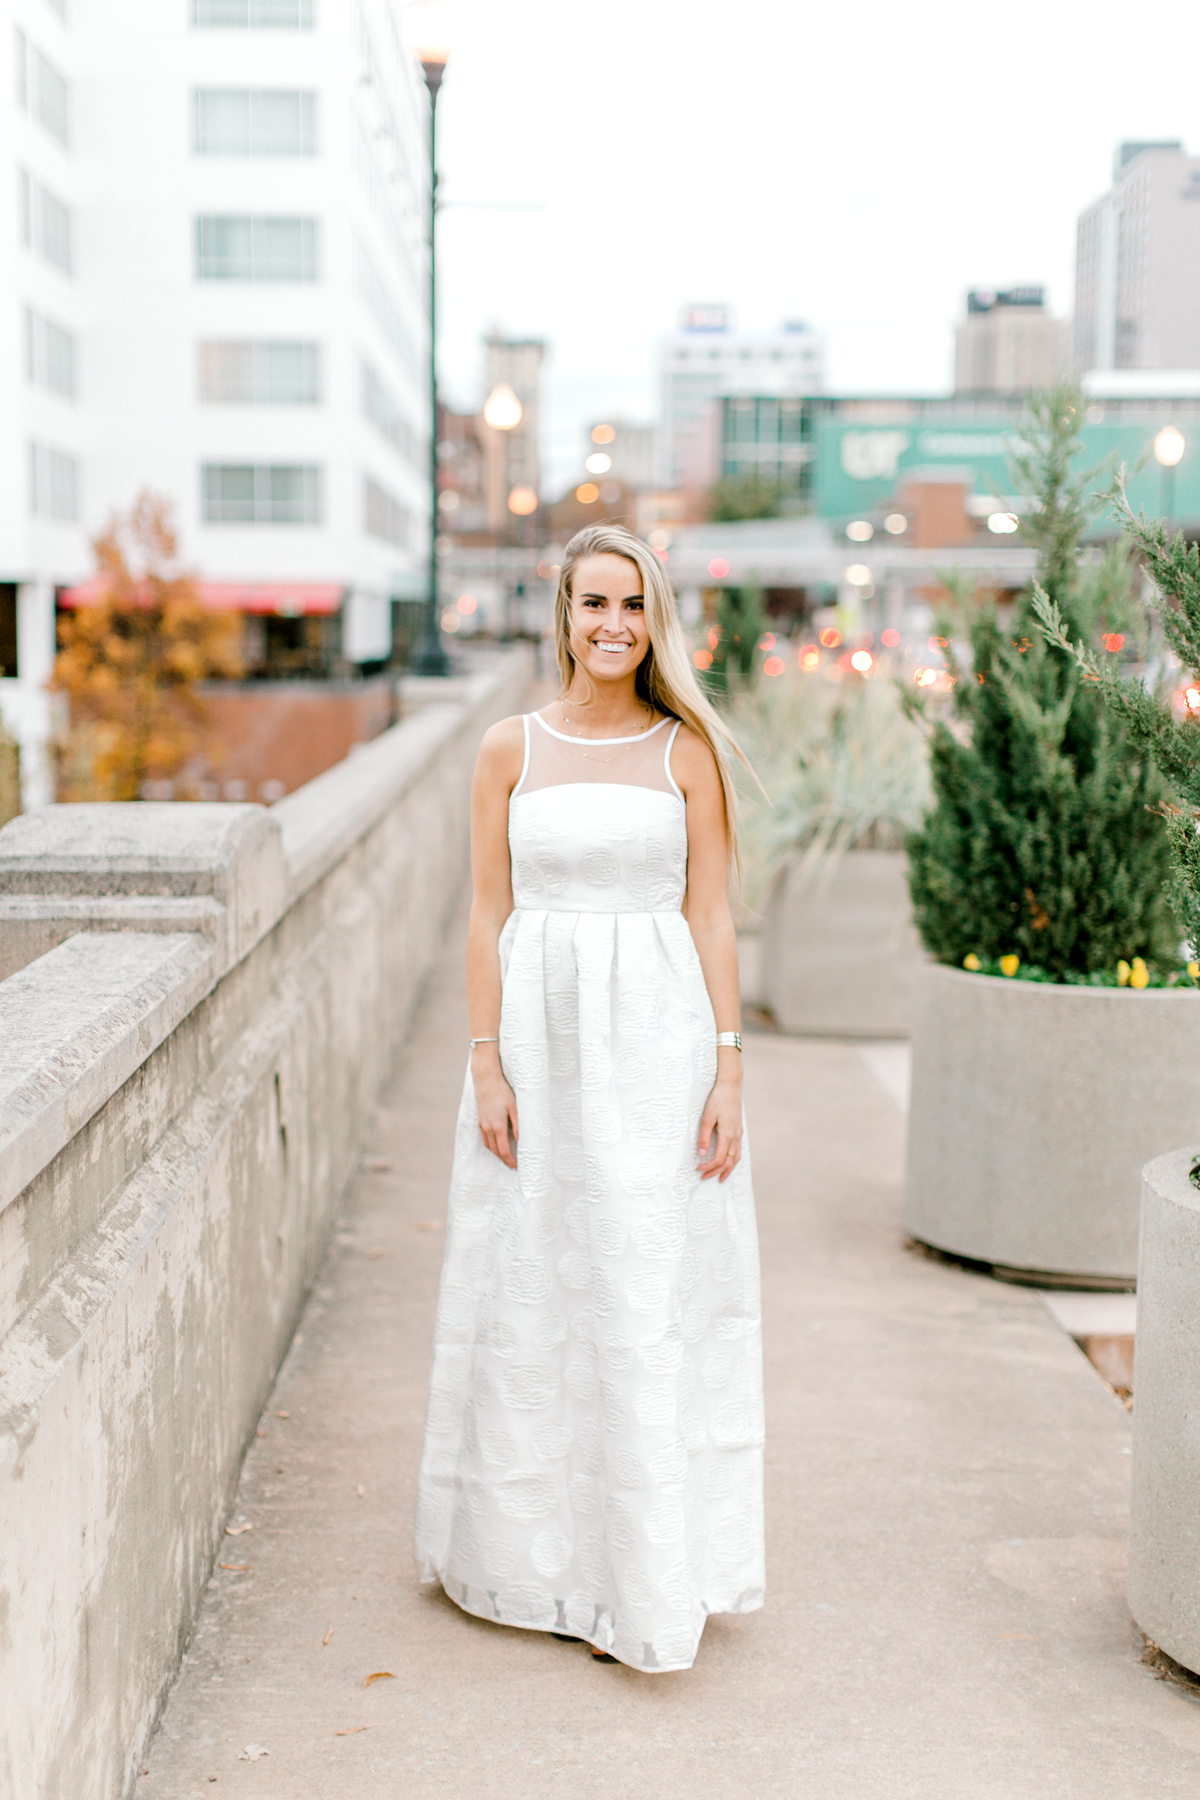 Bride-to-be wearing long white dress with floral embroidery | Engagement dress | The Grace | Eternal Ivory